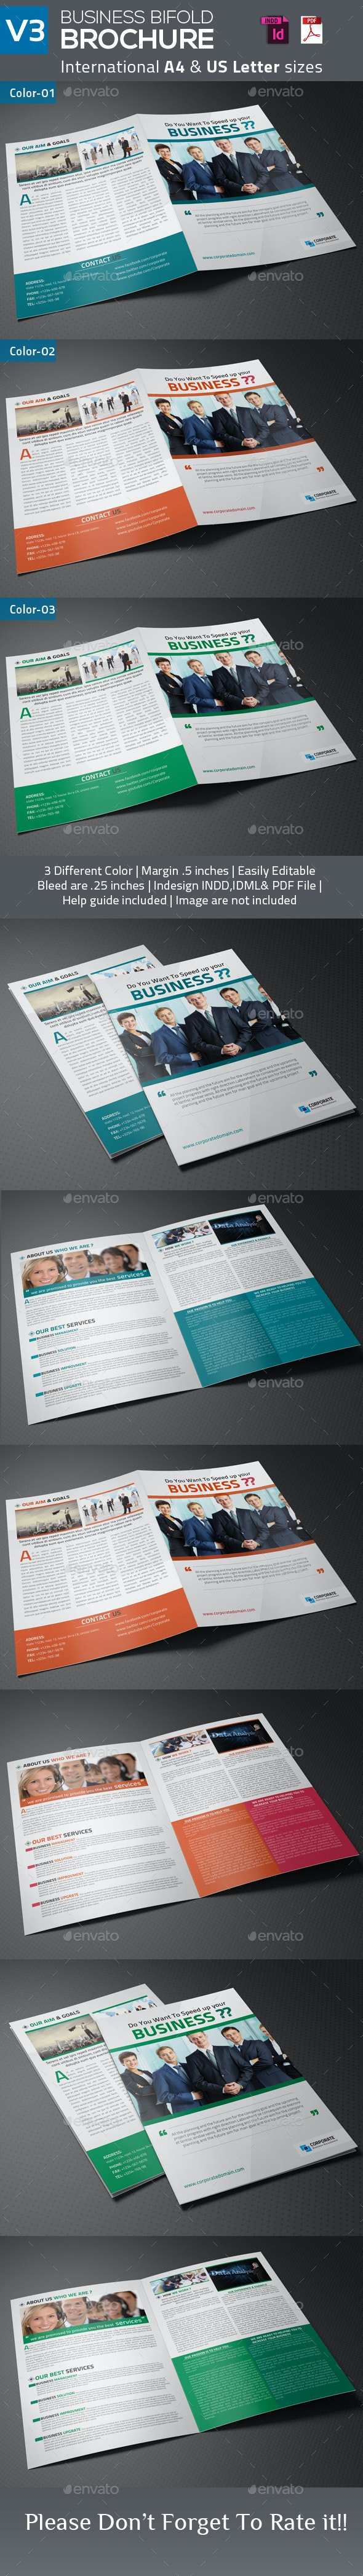 Business Bifold Brochure V3 - Corporate Brochures